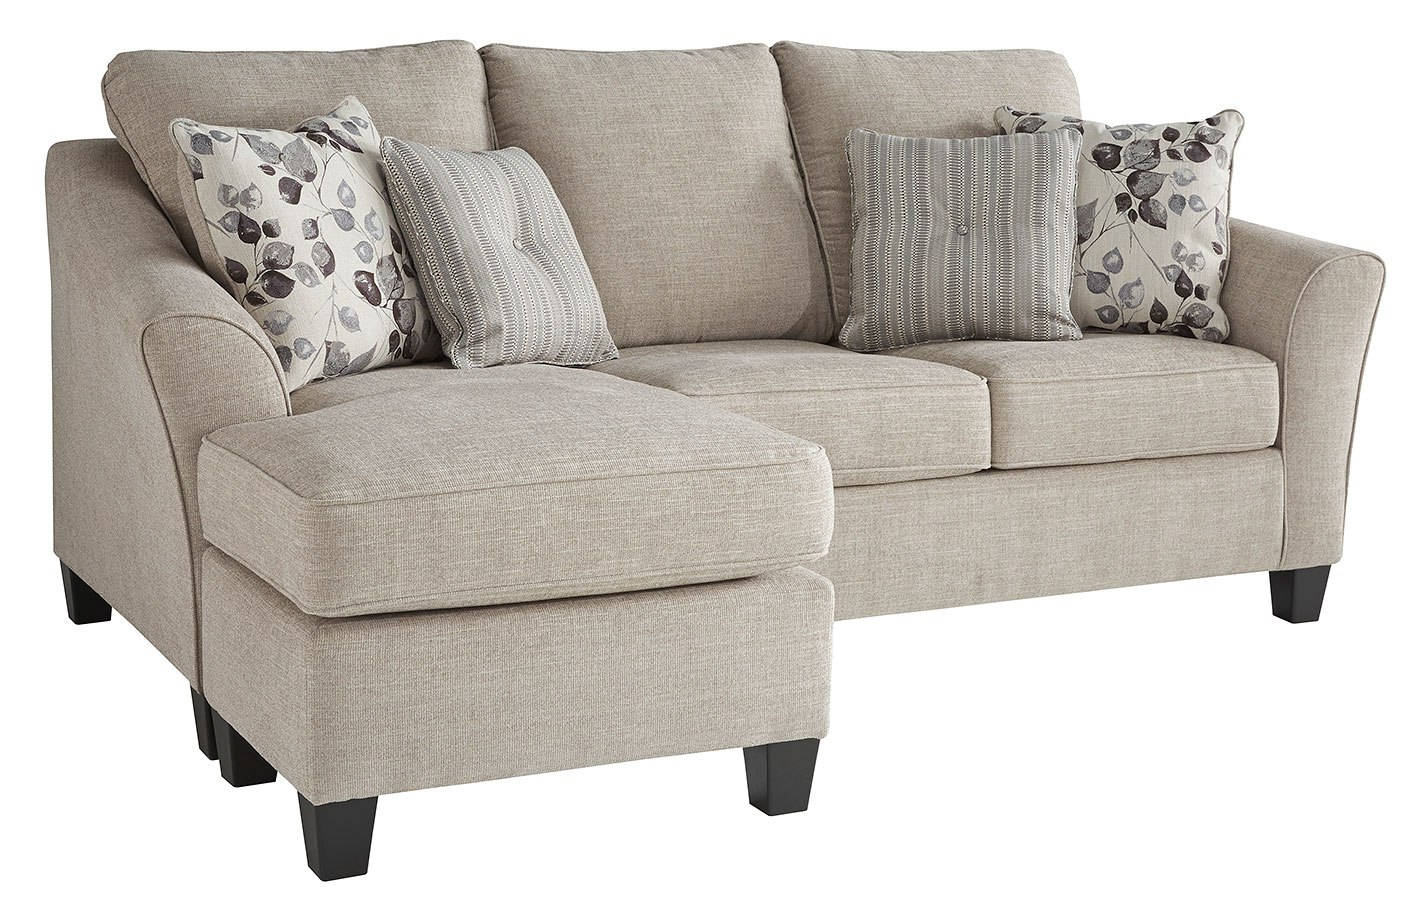 Abney Driftwood Sofa Chaise Queen Sleeper by Signature ...